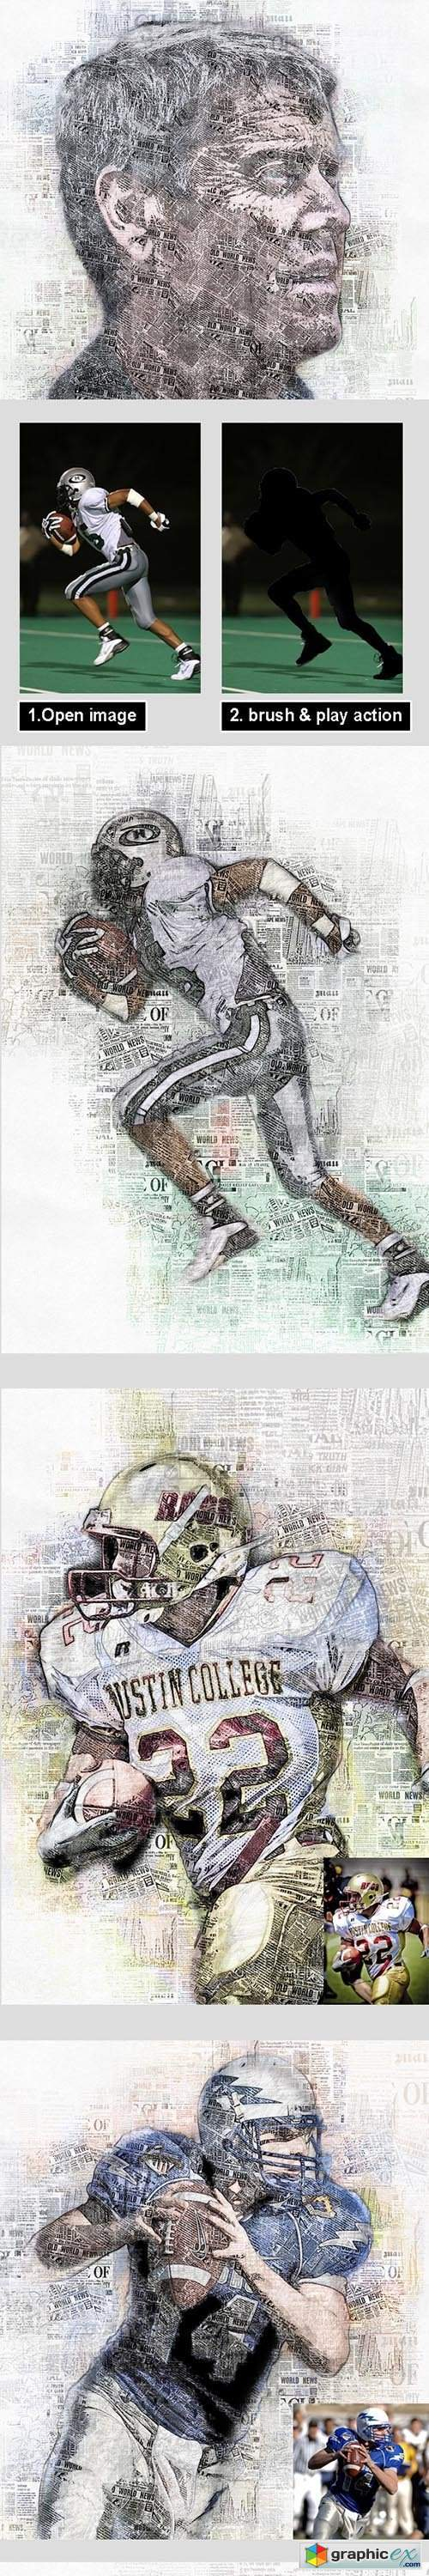 Newspaper Art Photoshop Action Vol 2